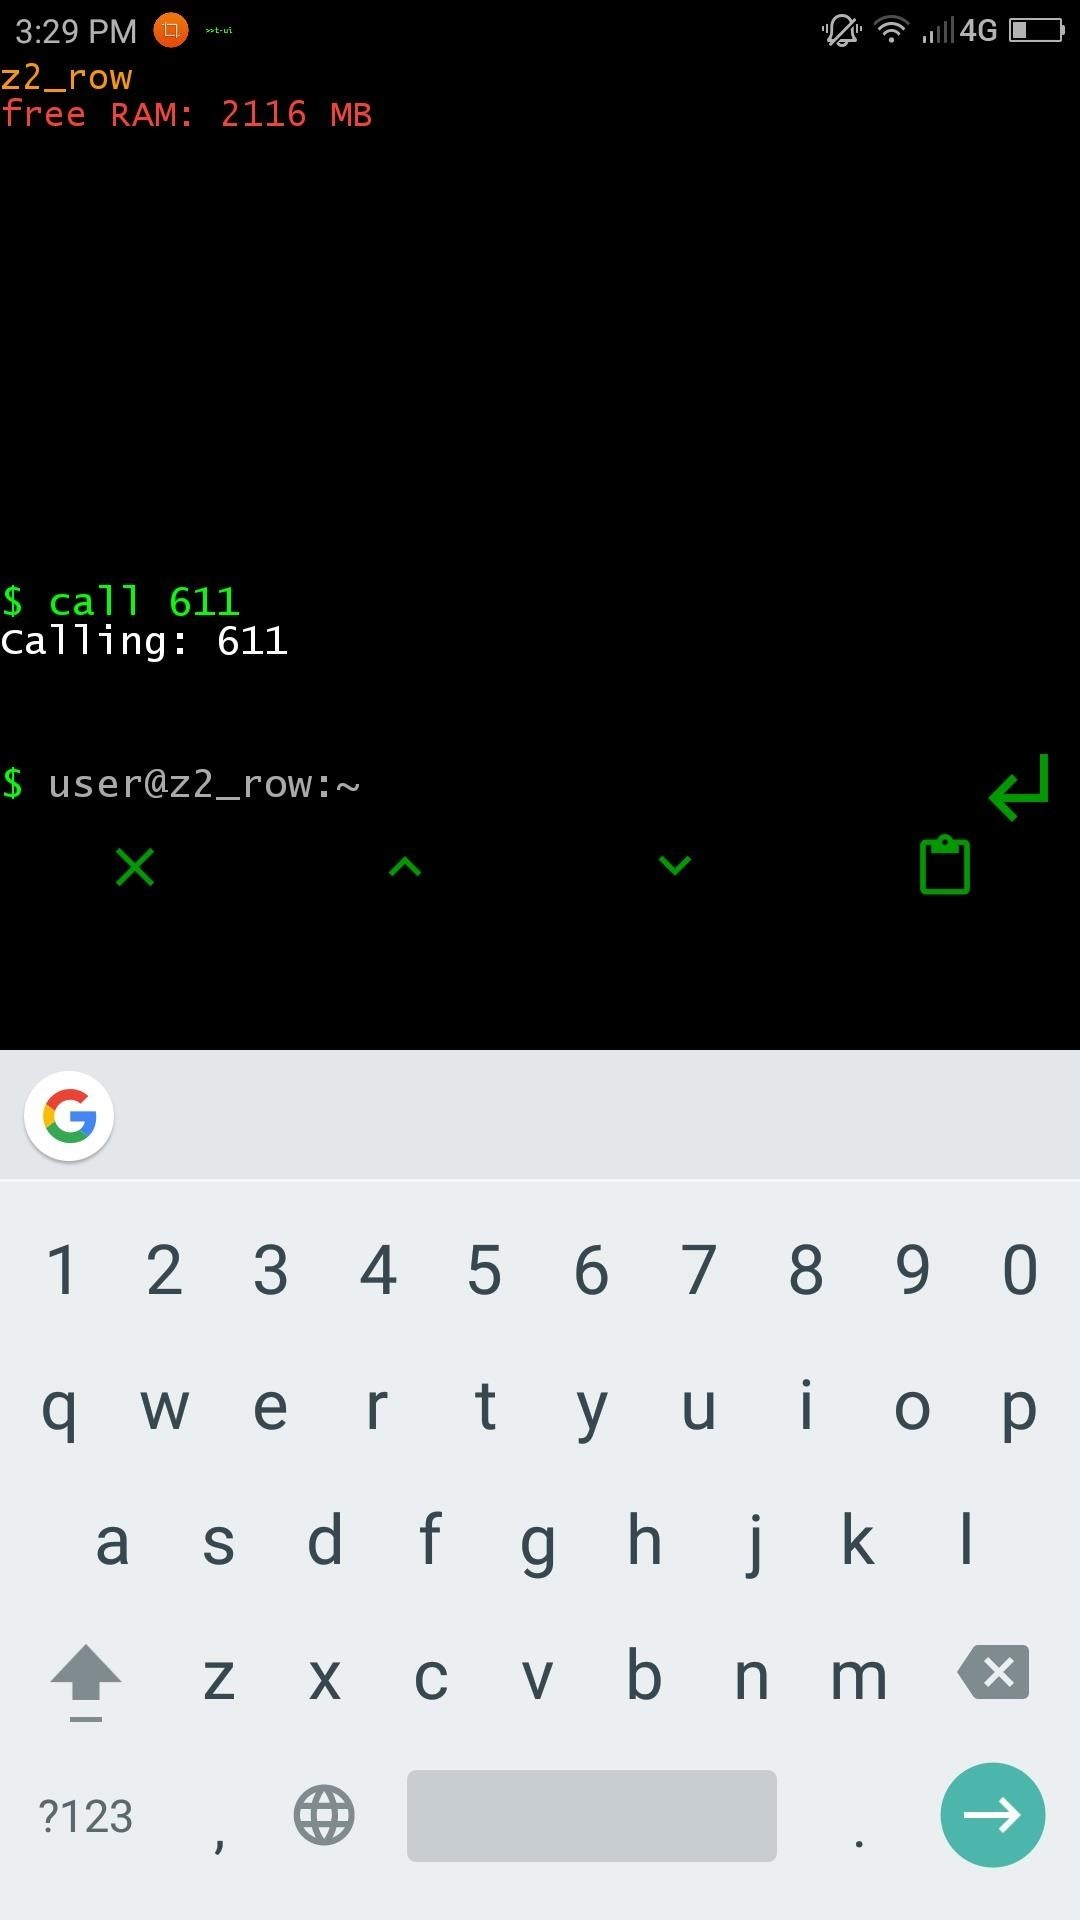 This Linux-Style Launcher Turns Your Home Screen into a Command Prompt